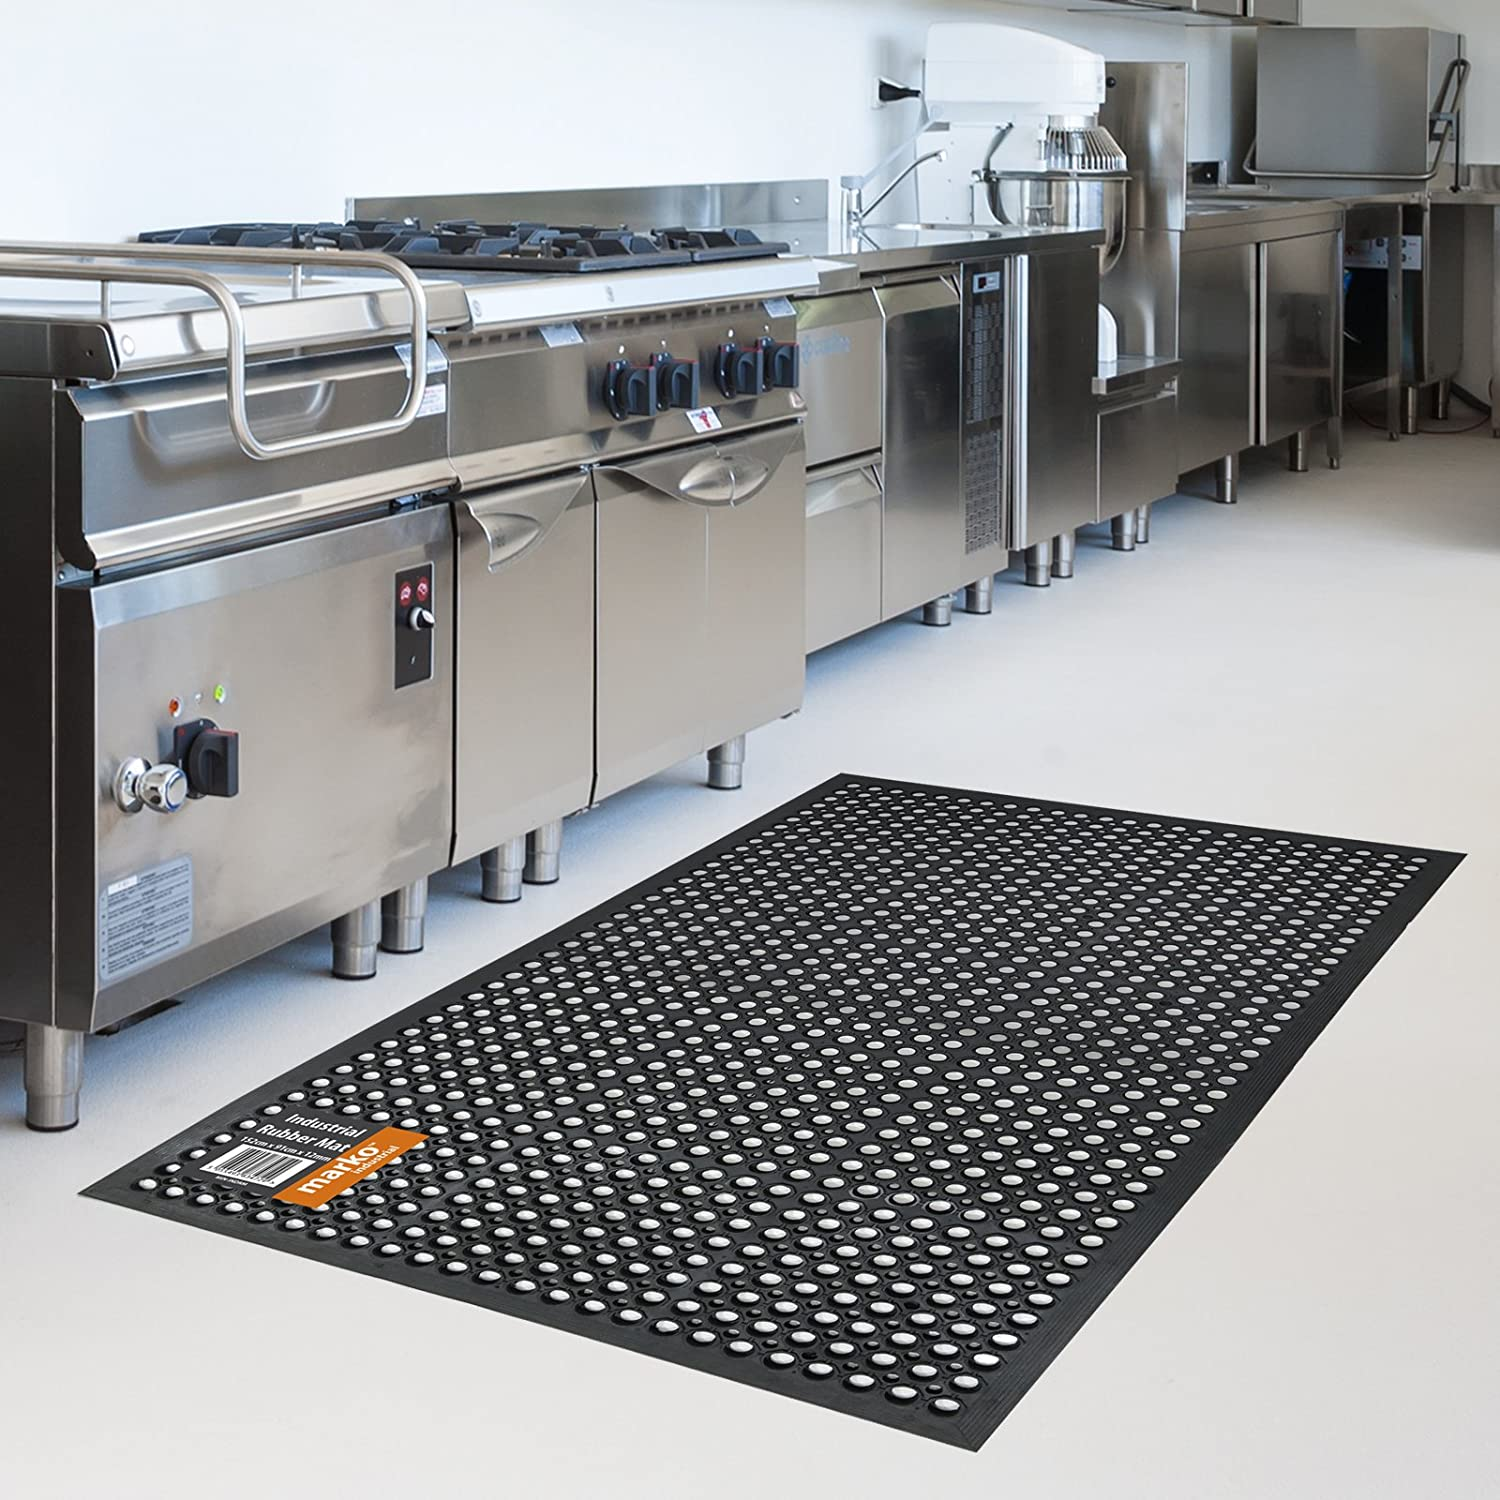 Rubber Mats For Kitchen Floor Rubber Floor Safety Mat 5x3 Ft Anti Fatigue Kitchen Bar Drainage